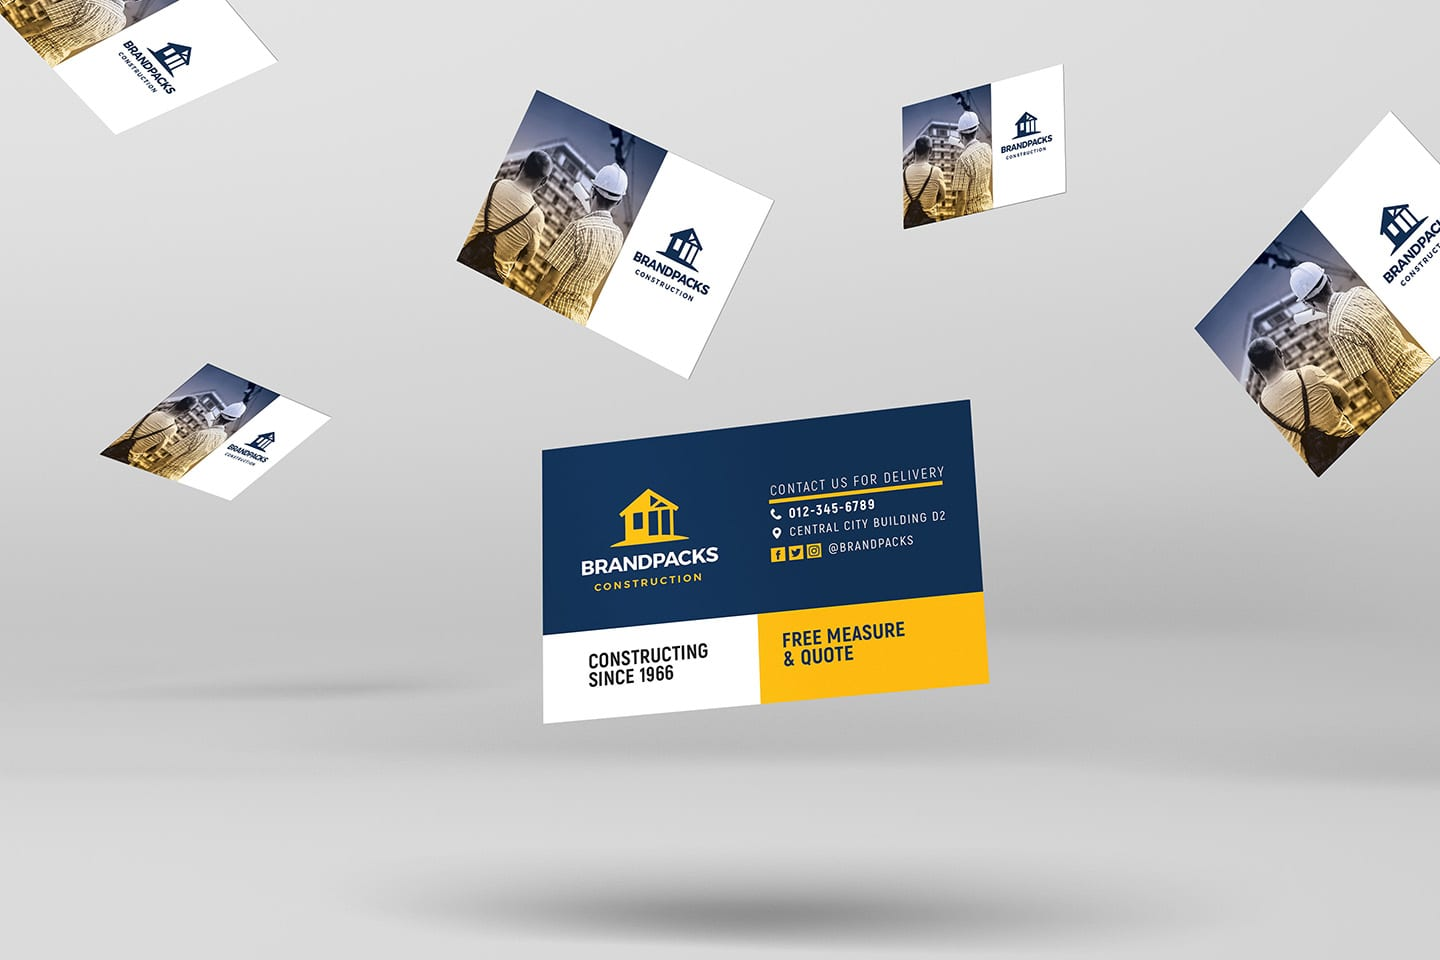 006 Imposing Construction Busines Card Template High Resolution  Templates Visiting Company Format Design PsdFull